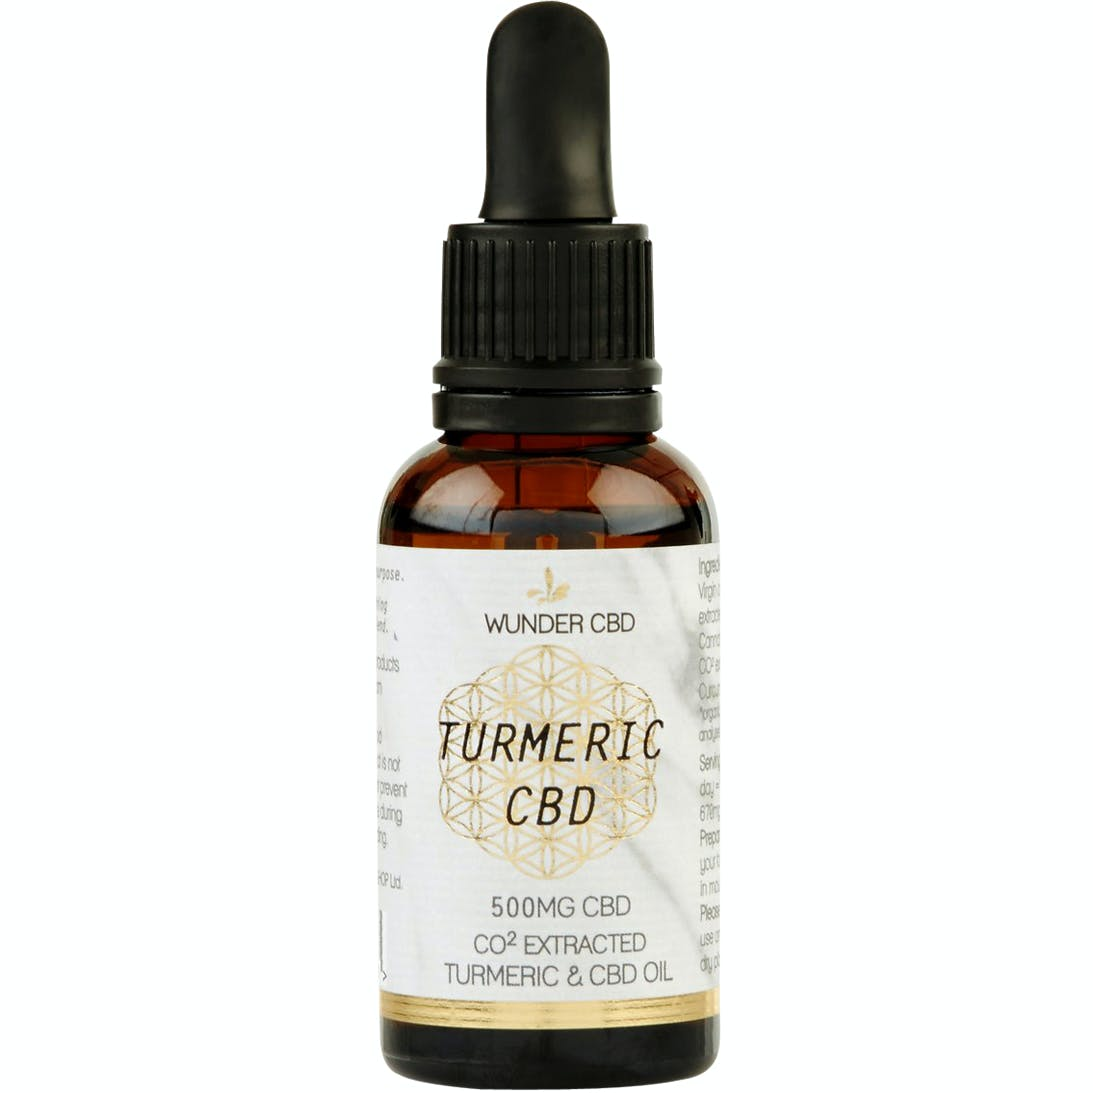 CBD and legal cannabis product reviews | Oils, capsules, brownies